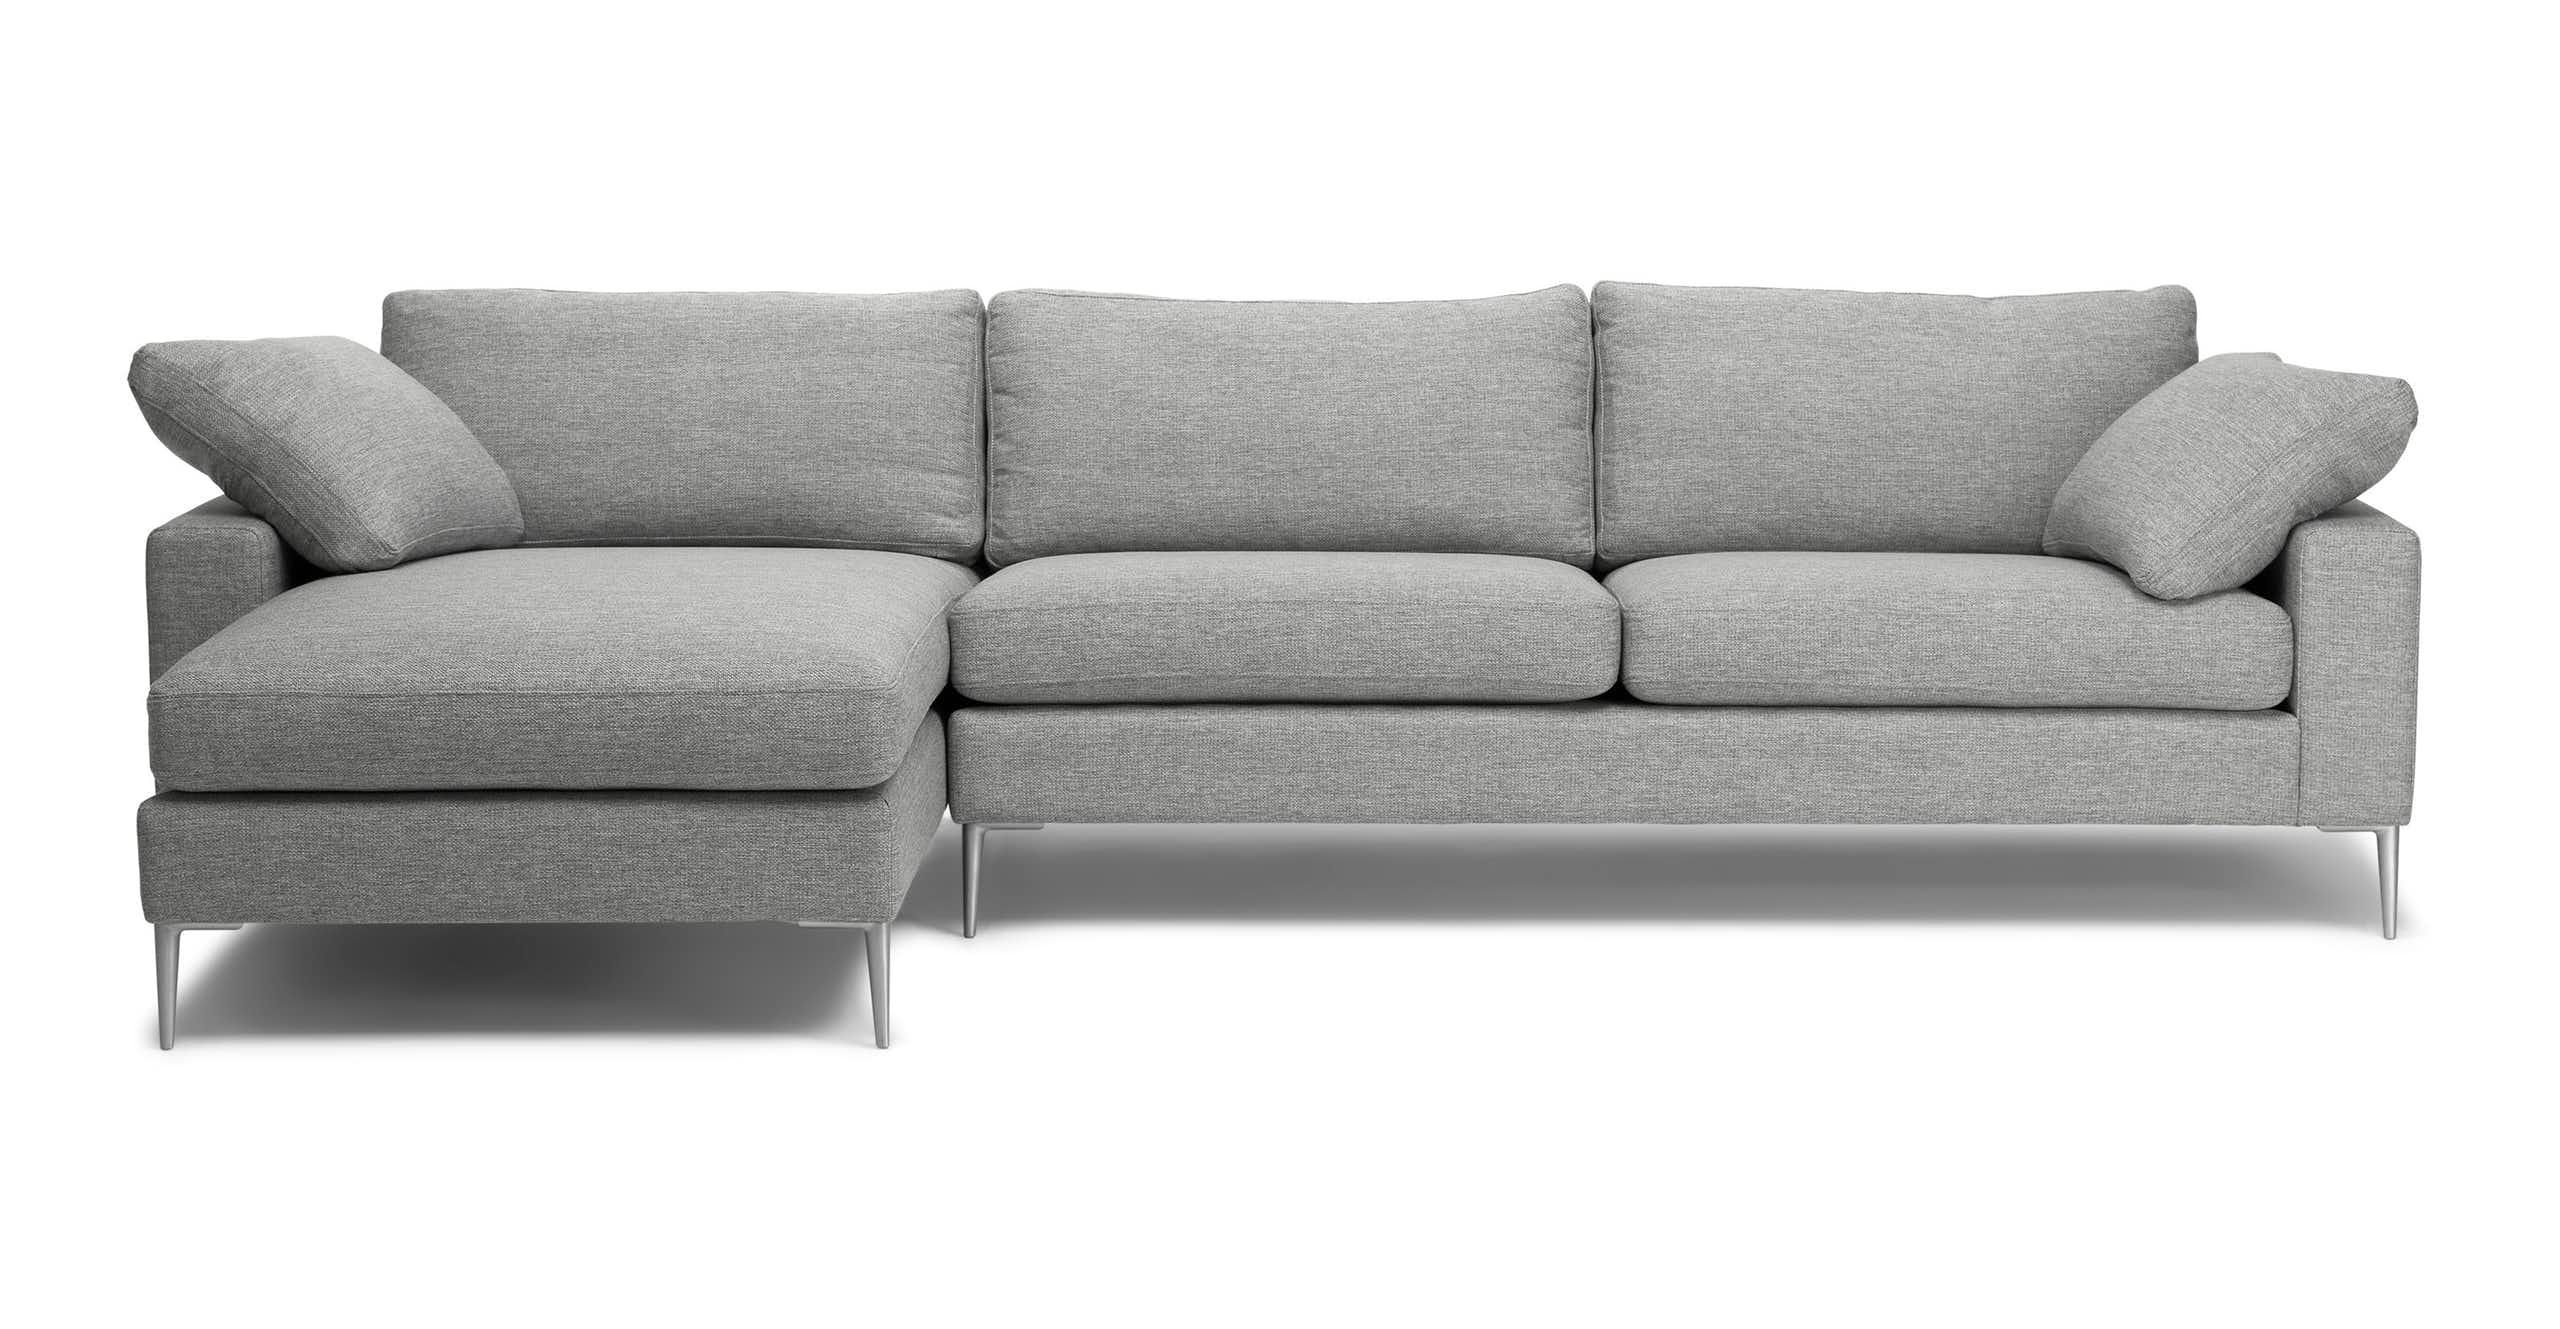 Nova Winter Gray Left Sectional Sofa   Mid Century Modern Inside Florence Mid Century Modern Left Sectional Sofas (View 9 of 15)